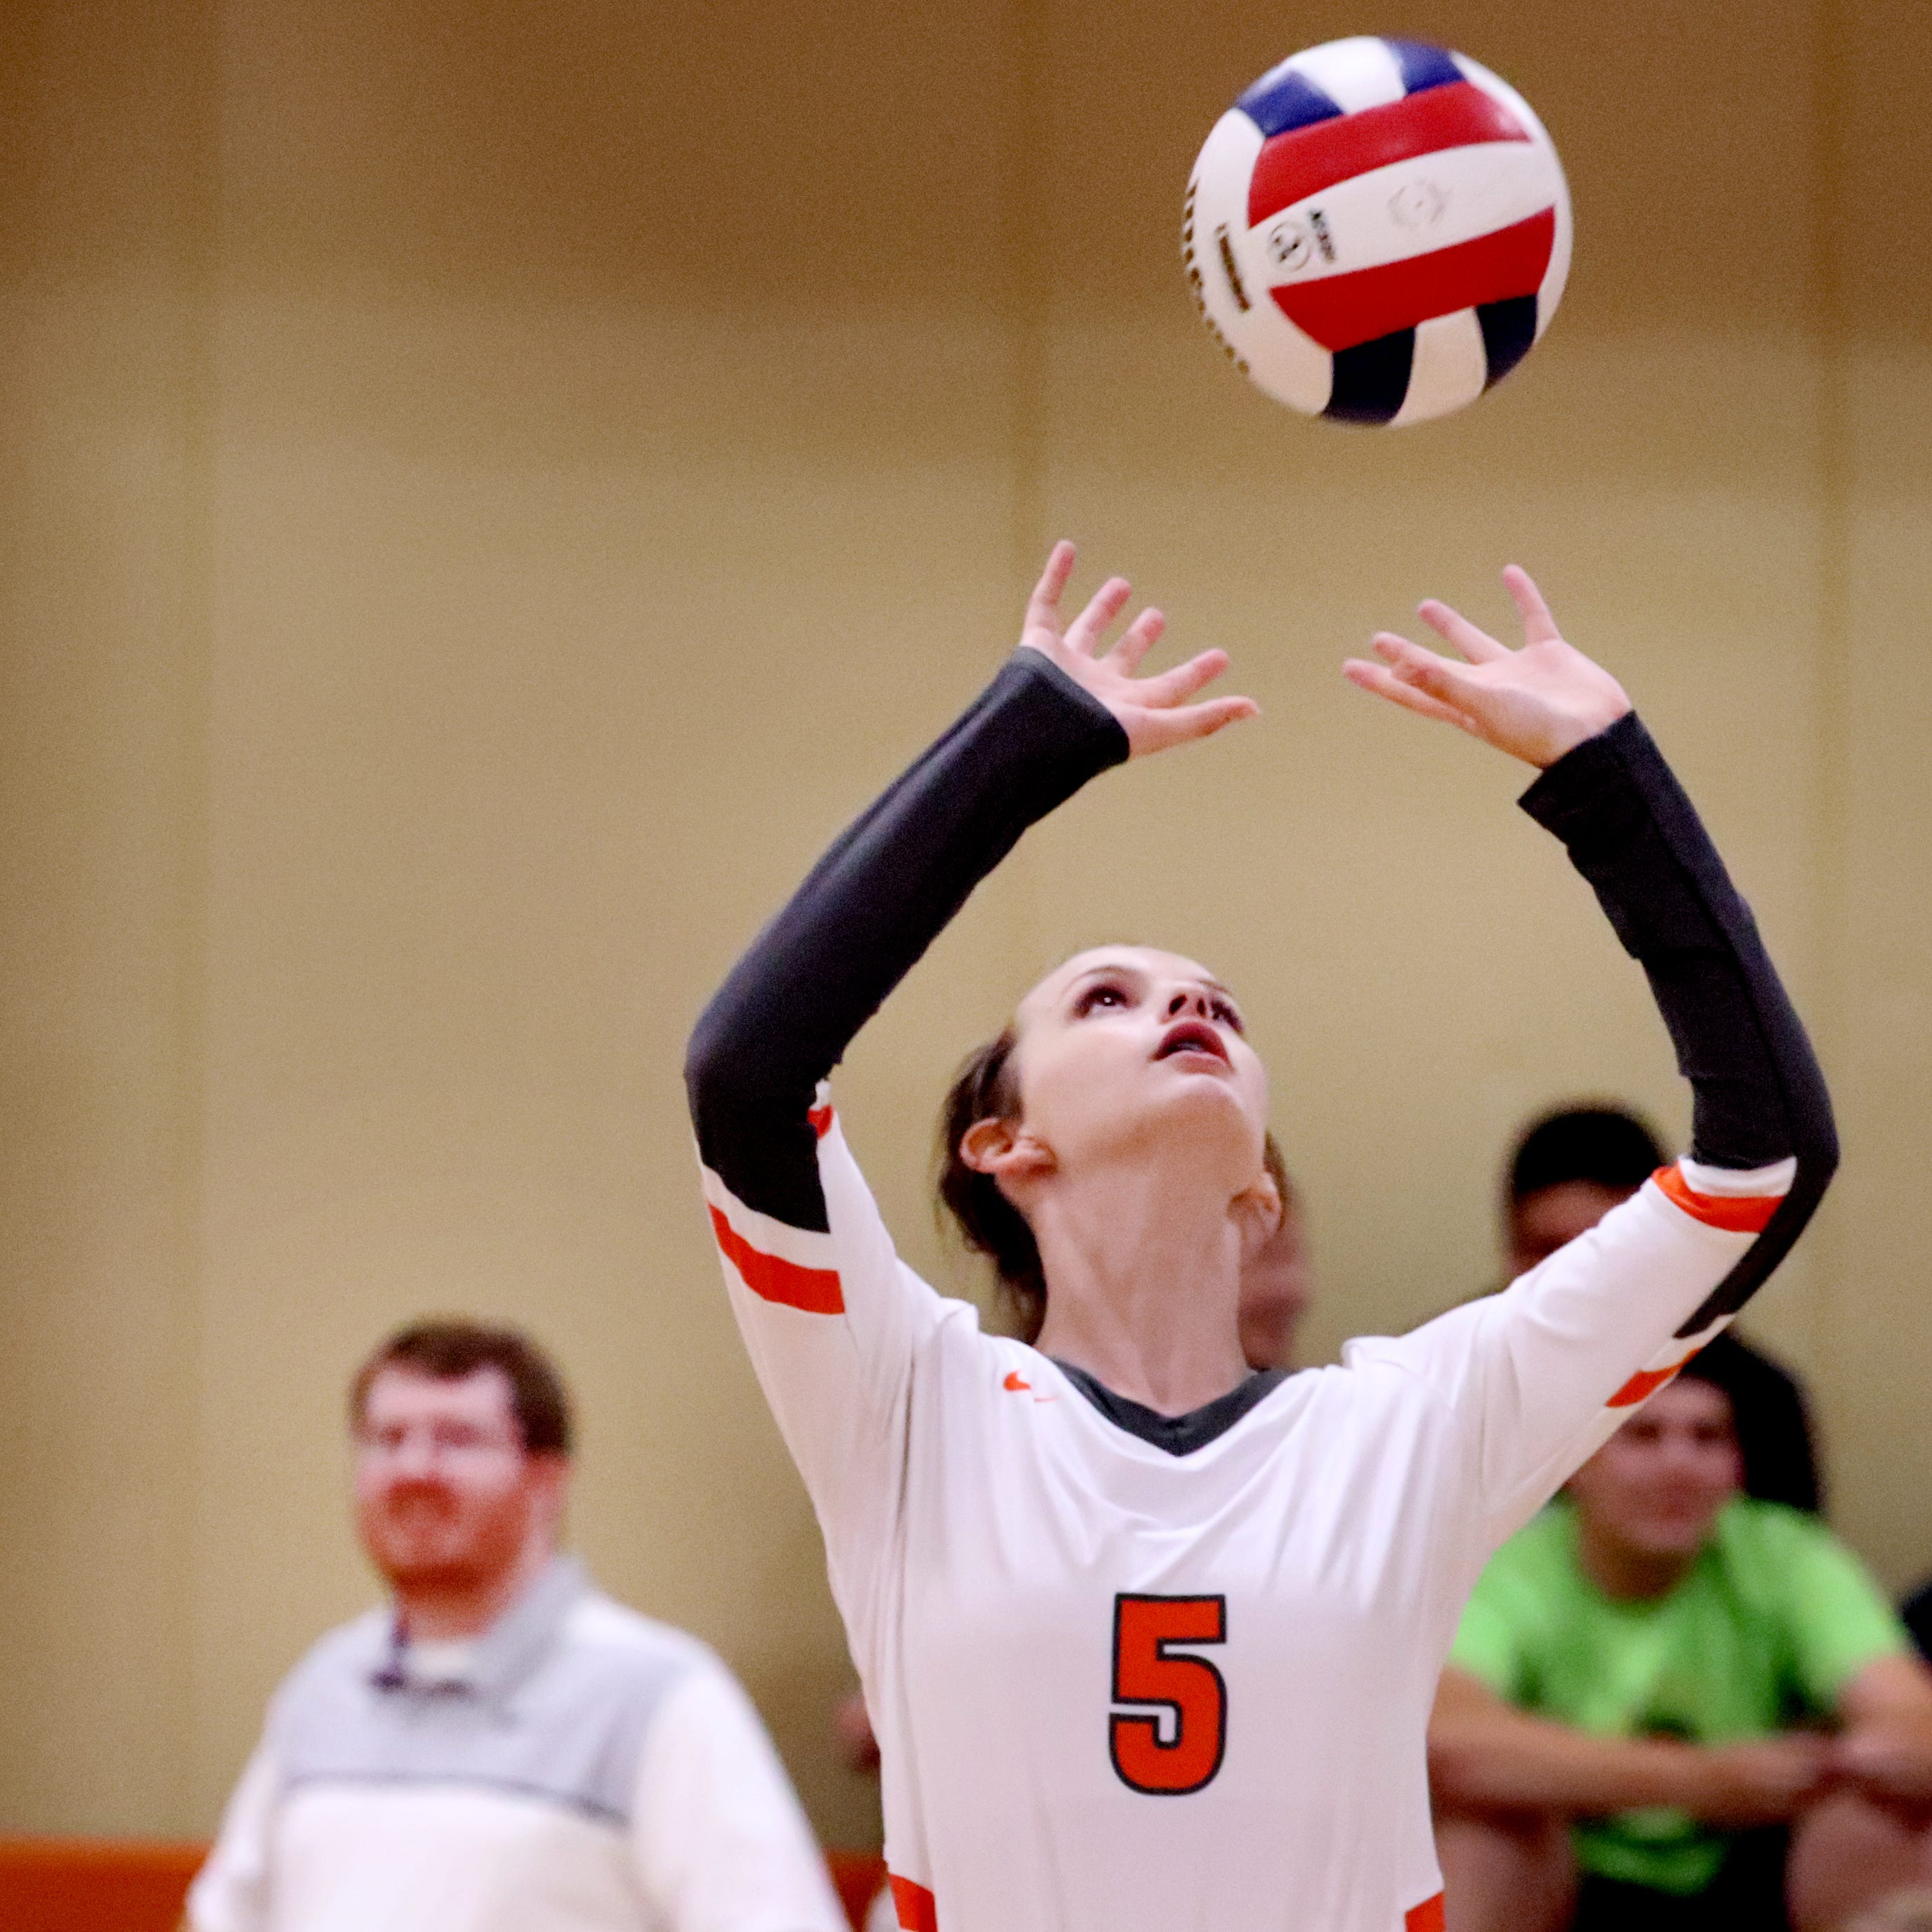 MTCS's Ellie Shirley (5) sets the ball during a game against   PCA in volleyball at home on Monday, Sept. 17, 2018. MTCS won 3 games back to back.